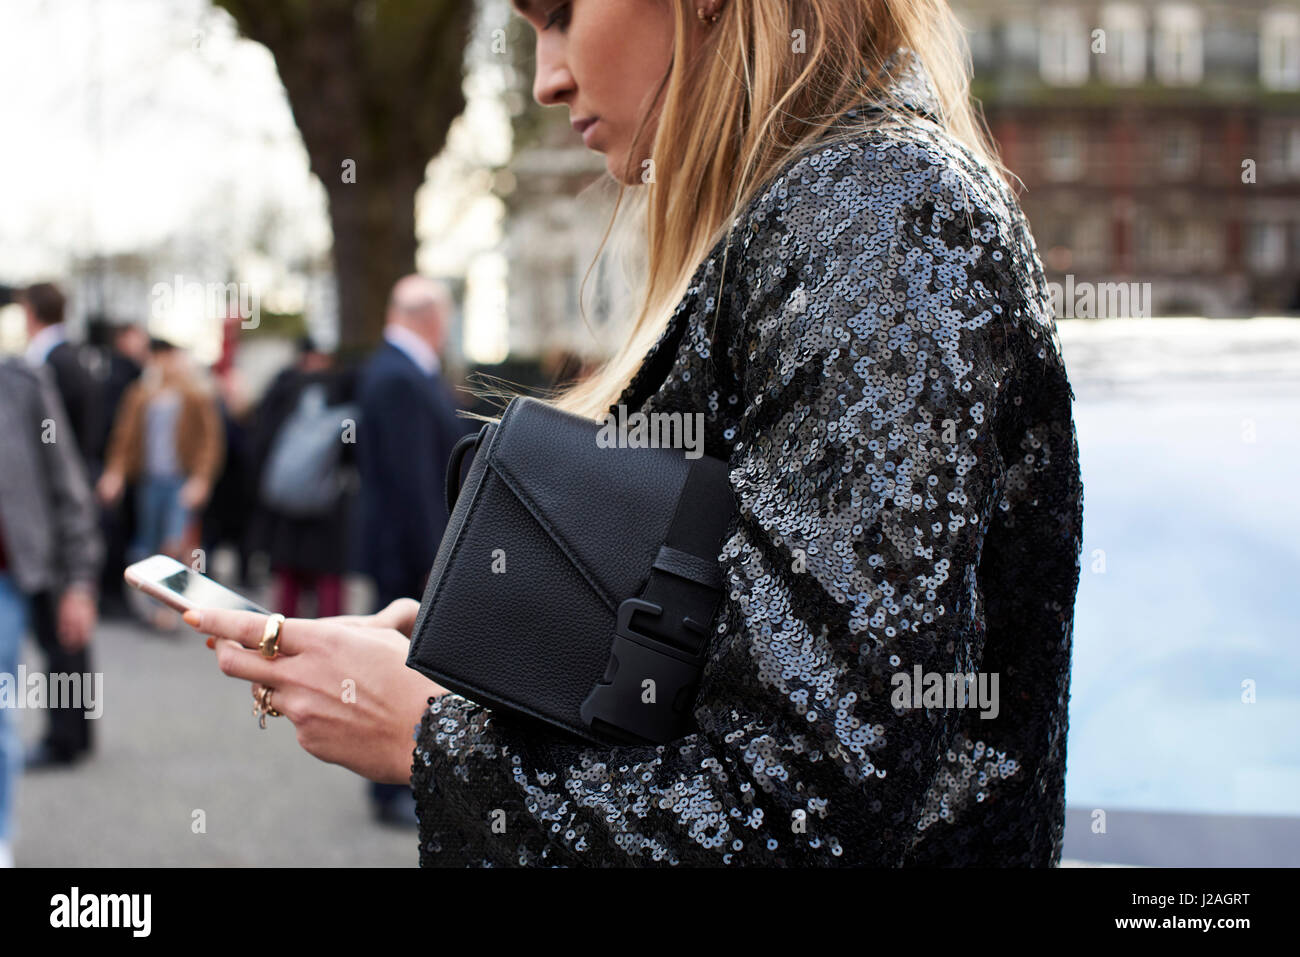 LONDON - FEBRUARY, 2017: Waist up view of woman using smartphone in street outside Christopher Kane fashion show, - Stock Image